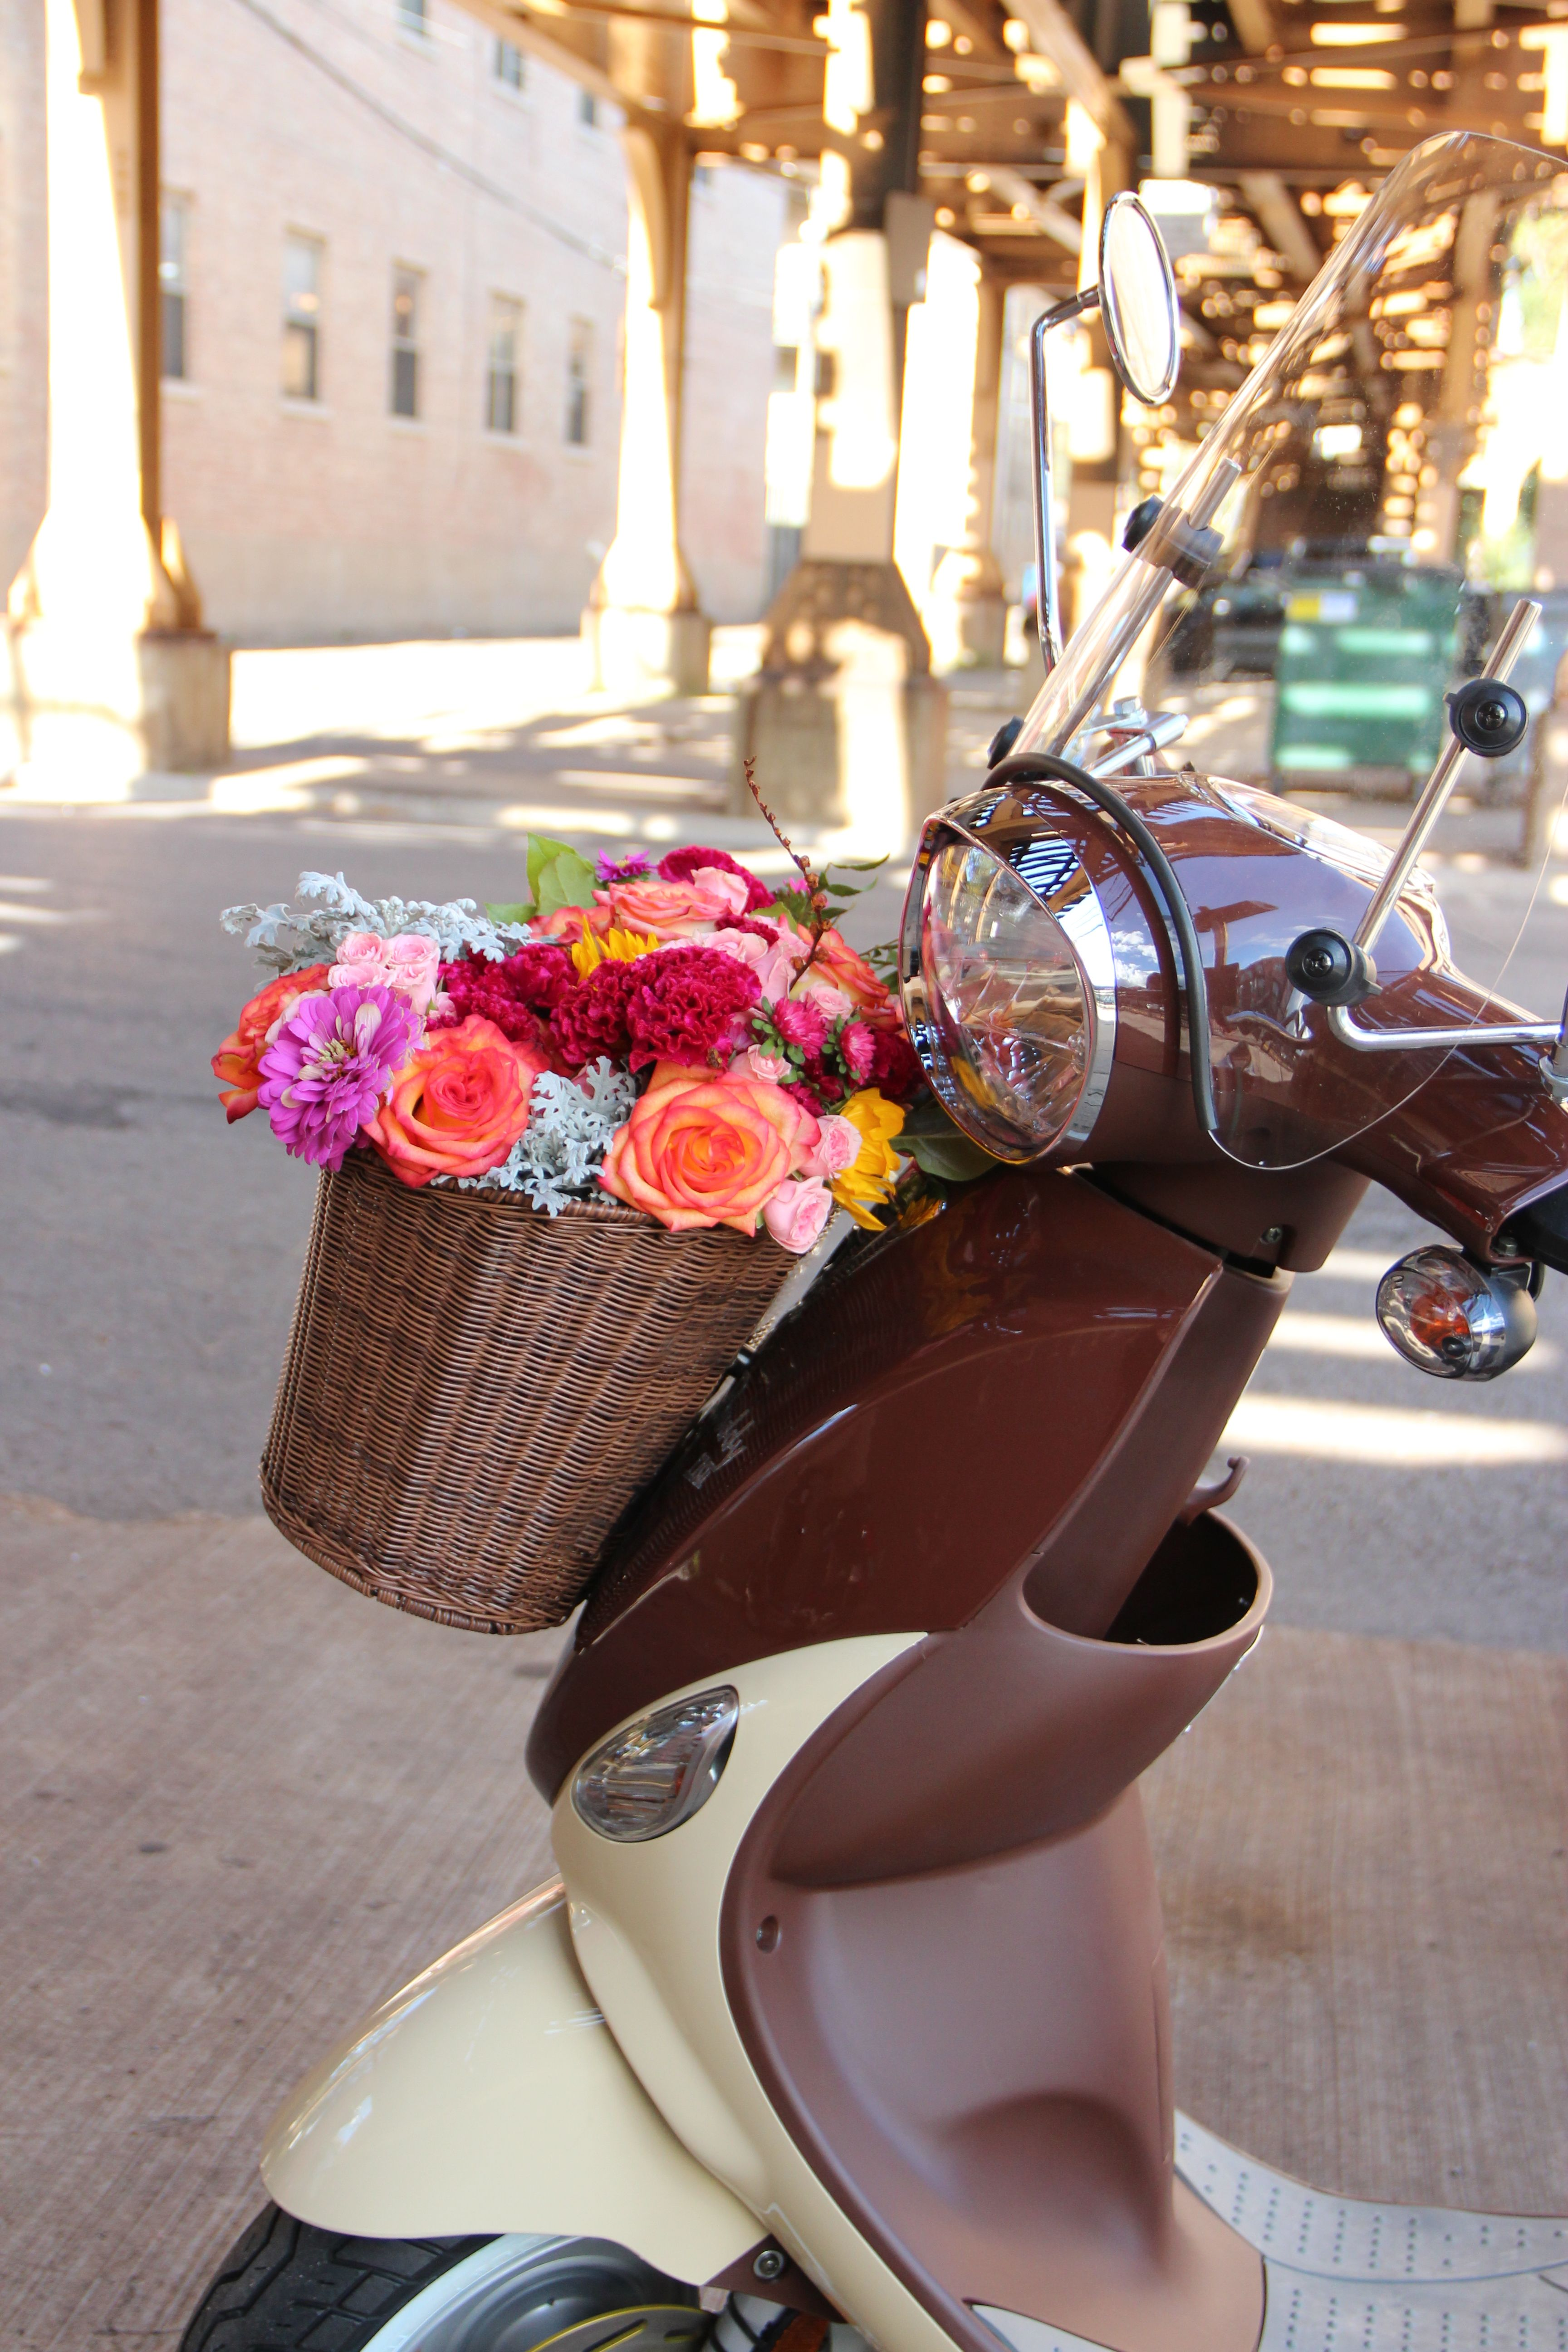 adf3f3375a3 Dress up your  Buddy scooter with a pretty flower basket.